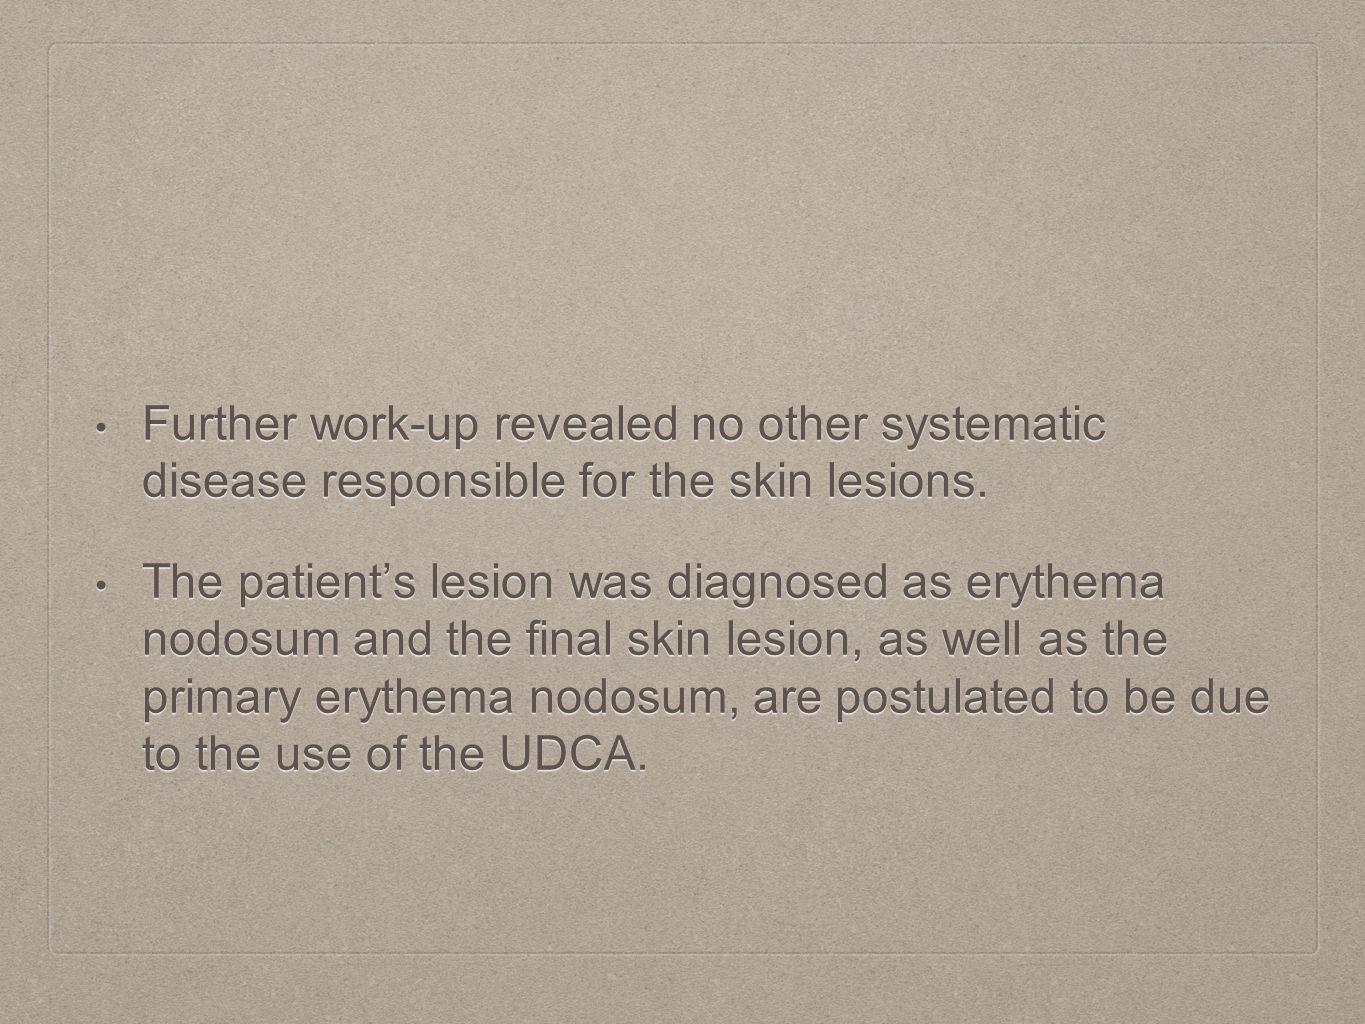 Further work-up revealed no other systematic disease responsible for the skin lesions.